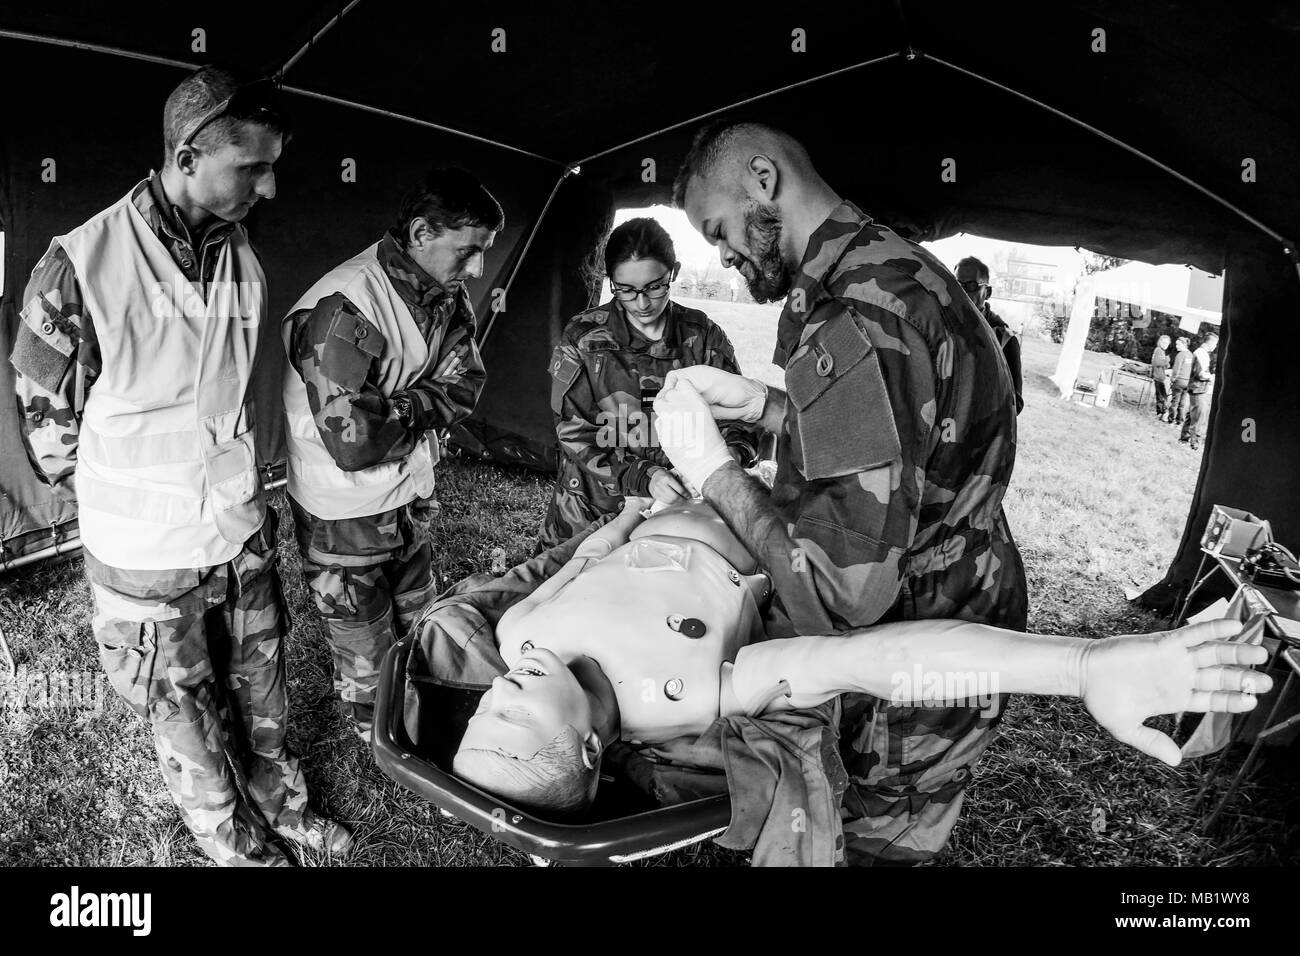 Aspirants military Physicians attend 'Ressa'c drill, Bron, France - Stock Image